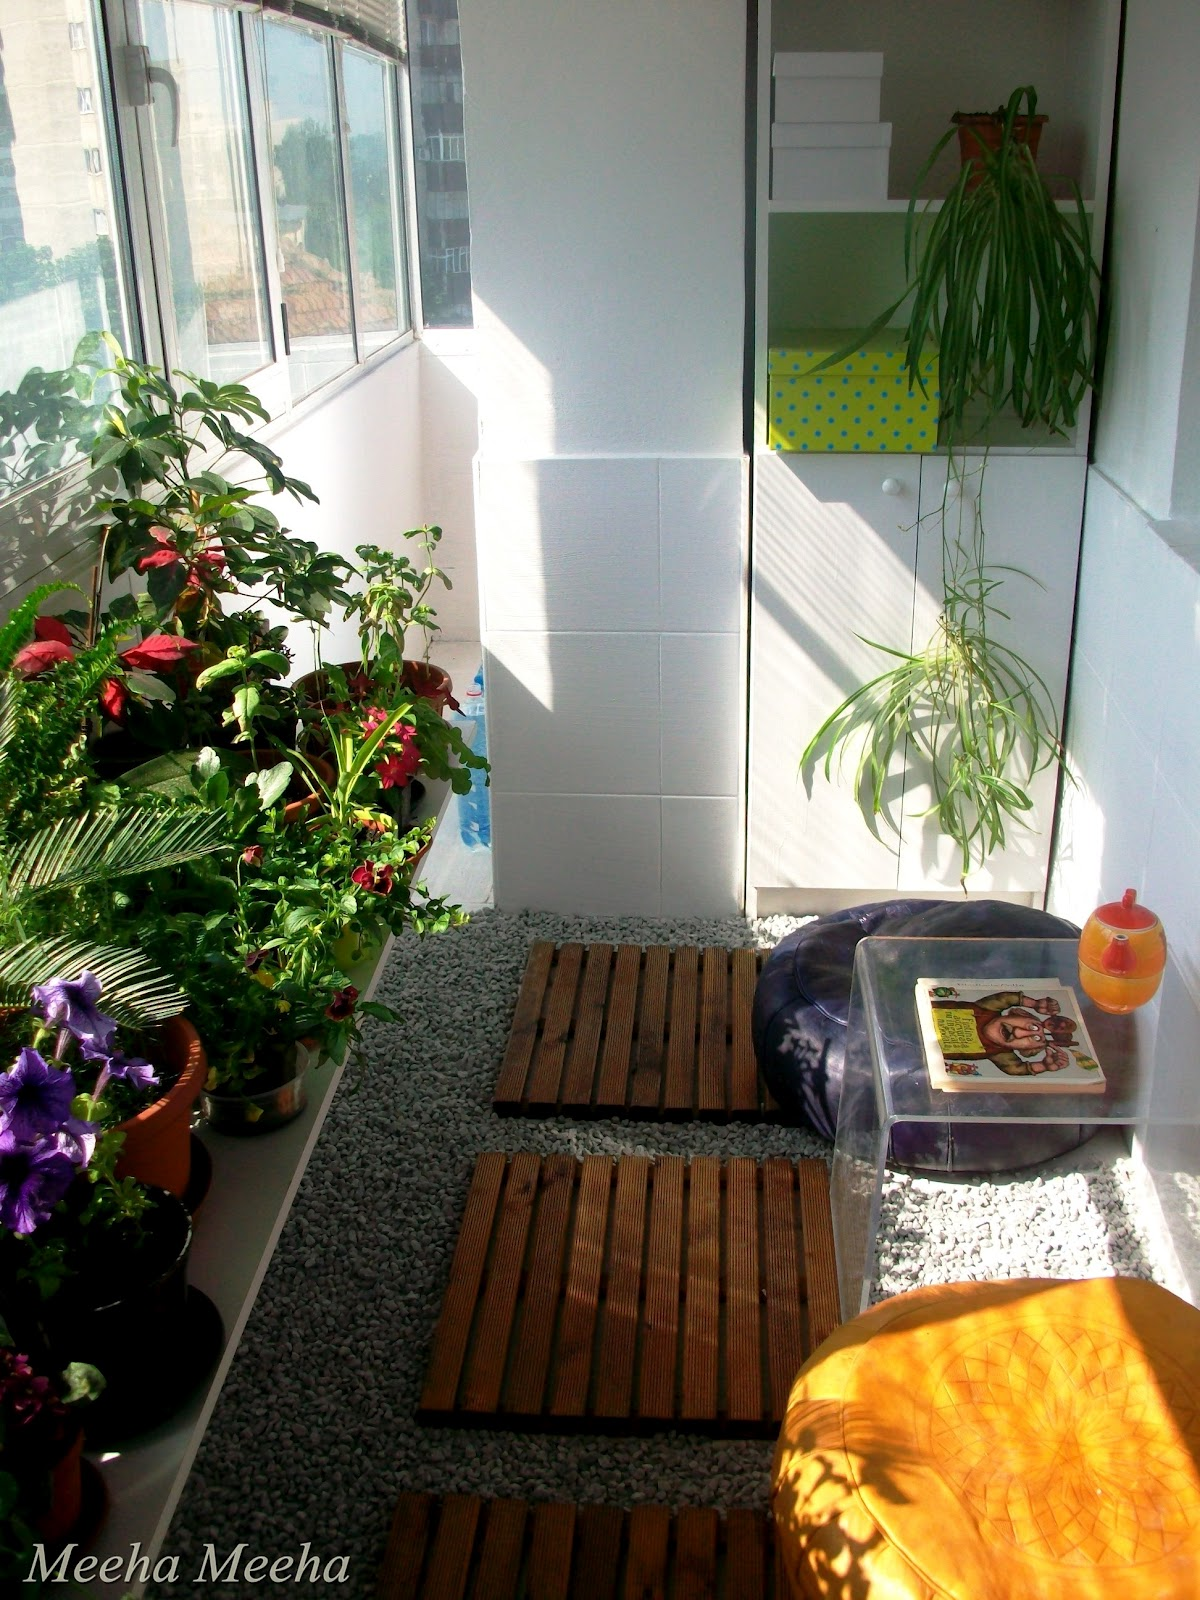 Meeha meeha before and after small balcony for Small balcony garden ideas